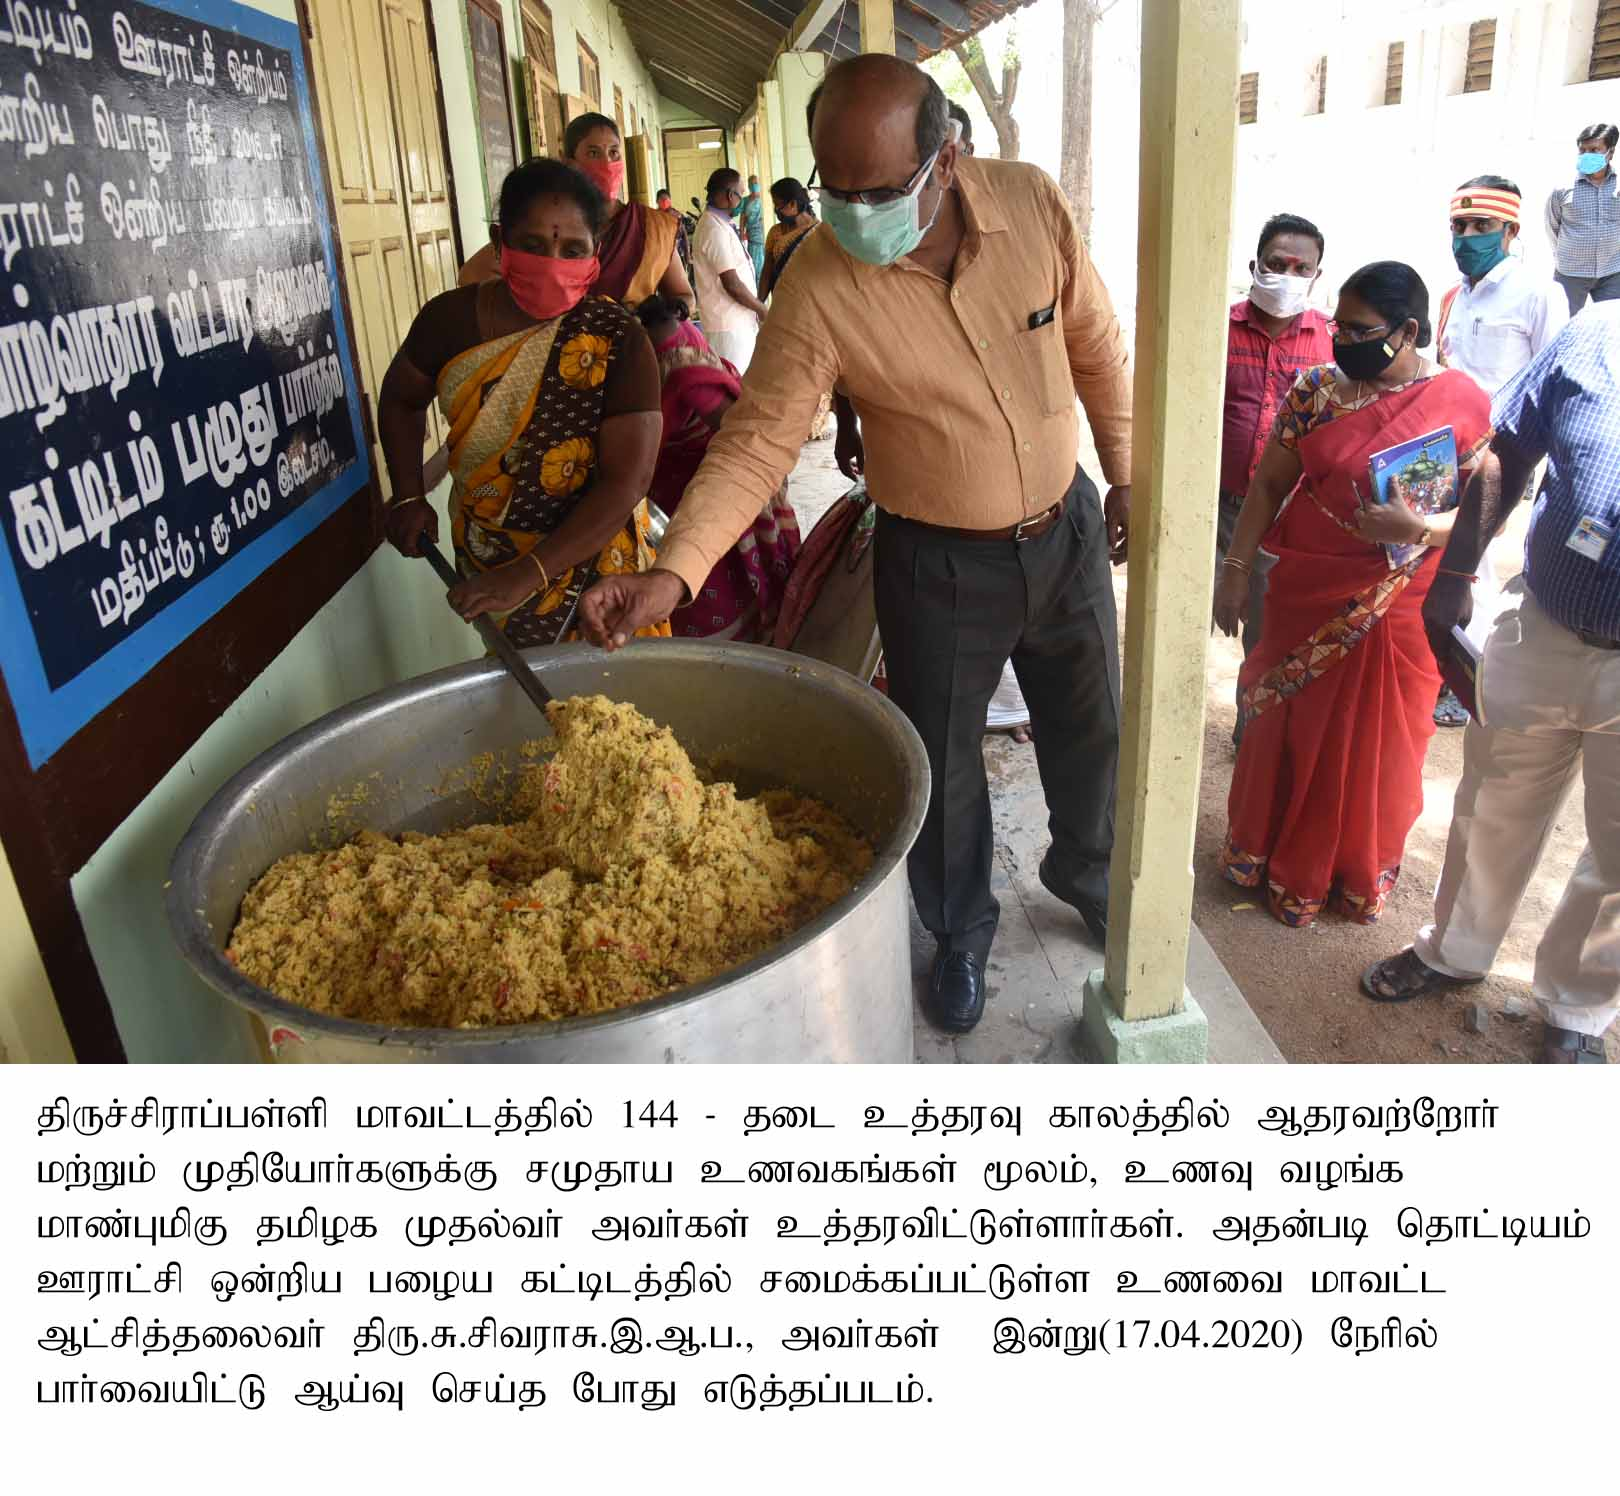 District Collector Inspected the Community Kitchen at Thottiyam